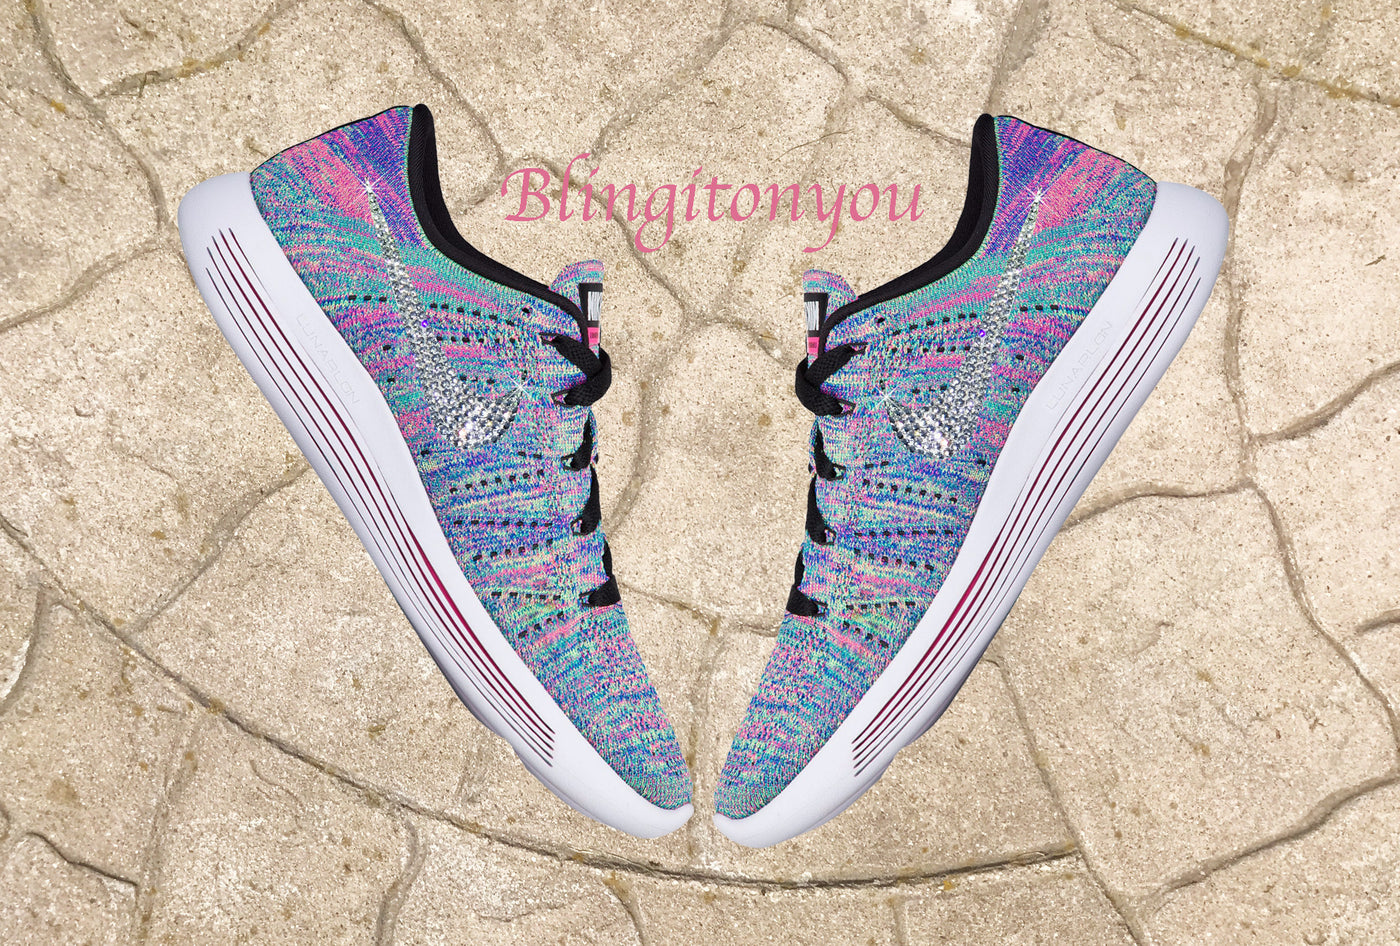 Blinged Women s Nike Lunarglide   Lunarepic Low Flyknit Shoes Bedazzled  with Swarovski Crystals dabb4e3244e9